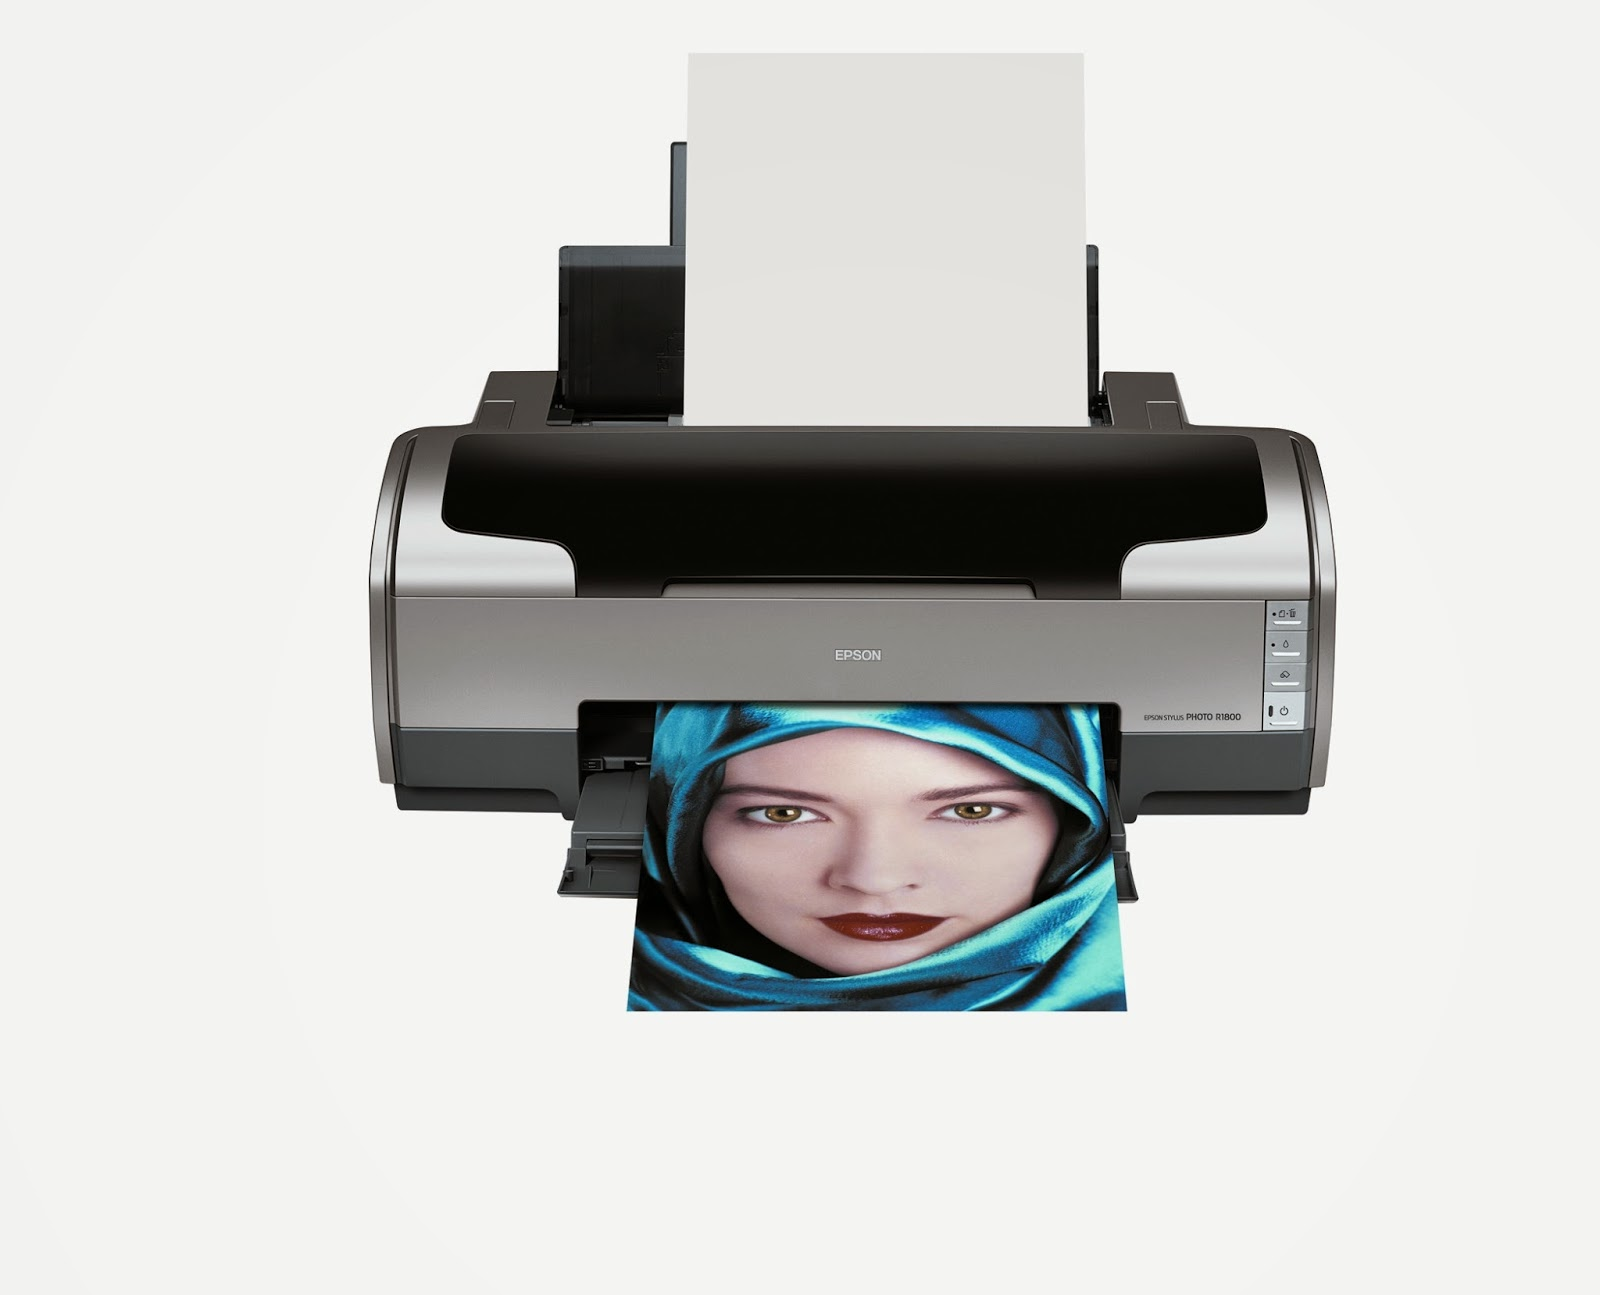 EPSON STYLUS PHOTO R1800 PRINTER DRIVER DOWNLOAD FREE